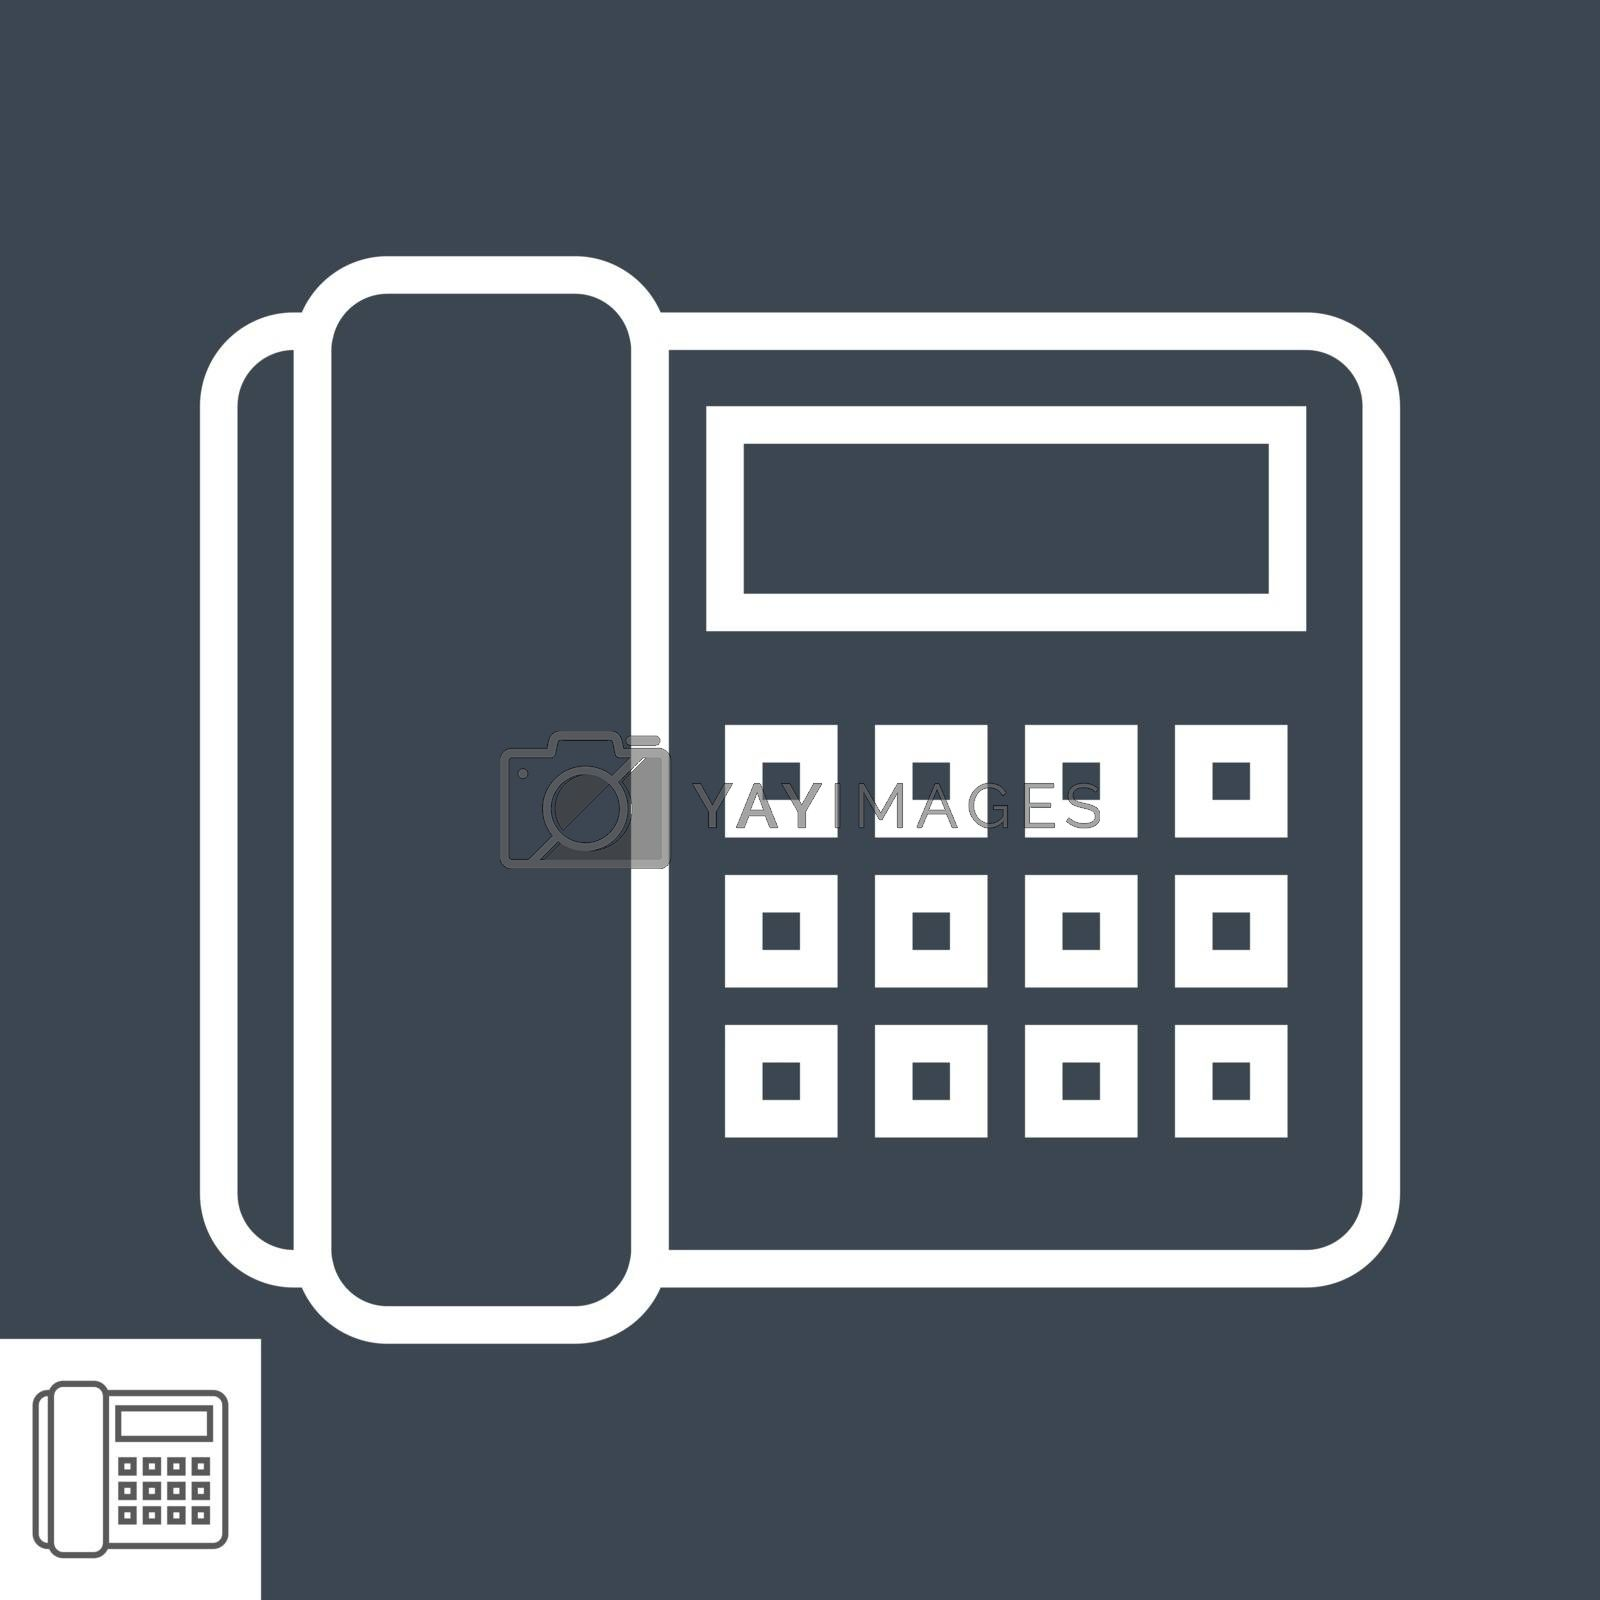 Office Phone Icon. Office Phone Related Vector Line Icon. Isolated on Black Background. Editable Stroke.